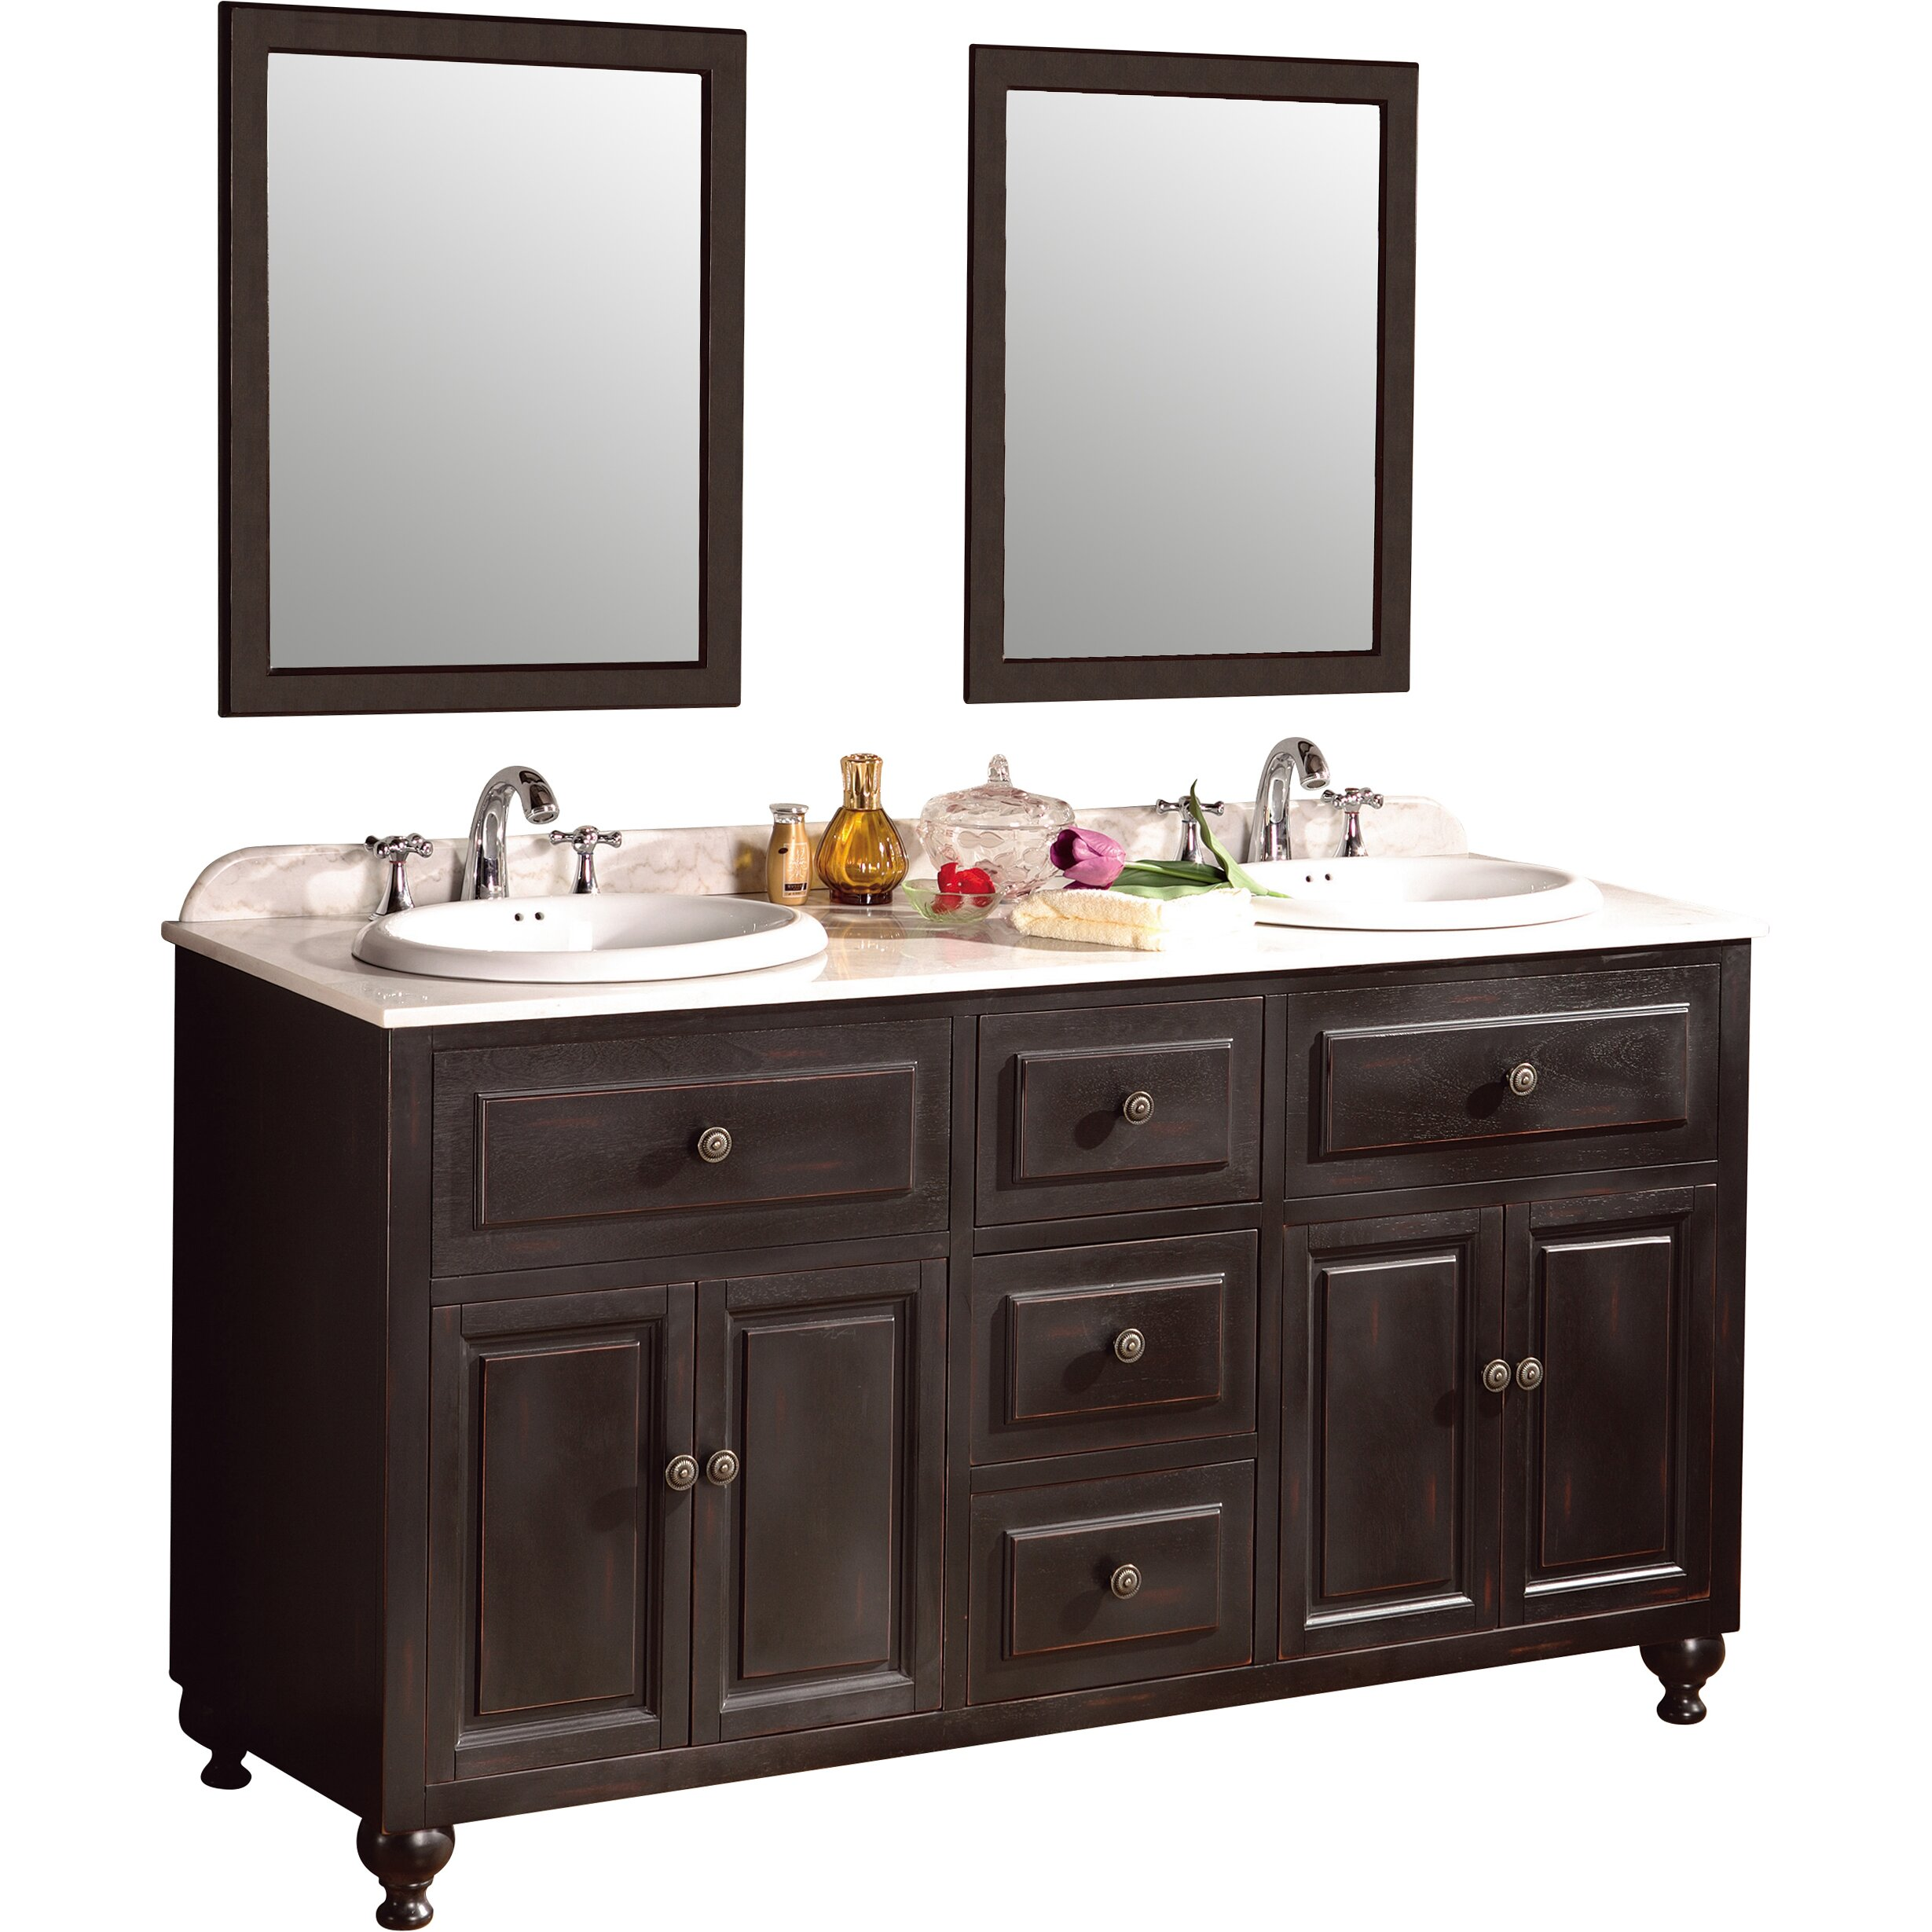 Ove Decors London 60 Double Bathroom Vanity Set Reviews